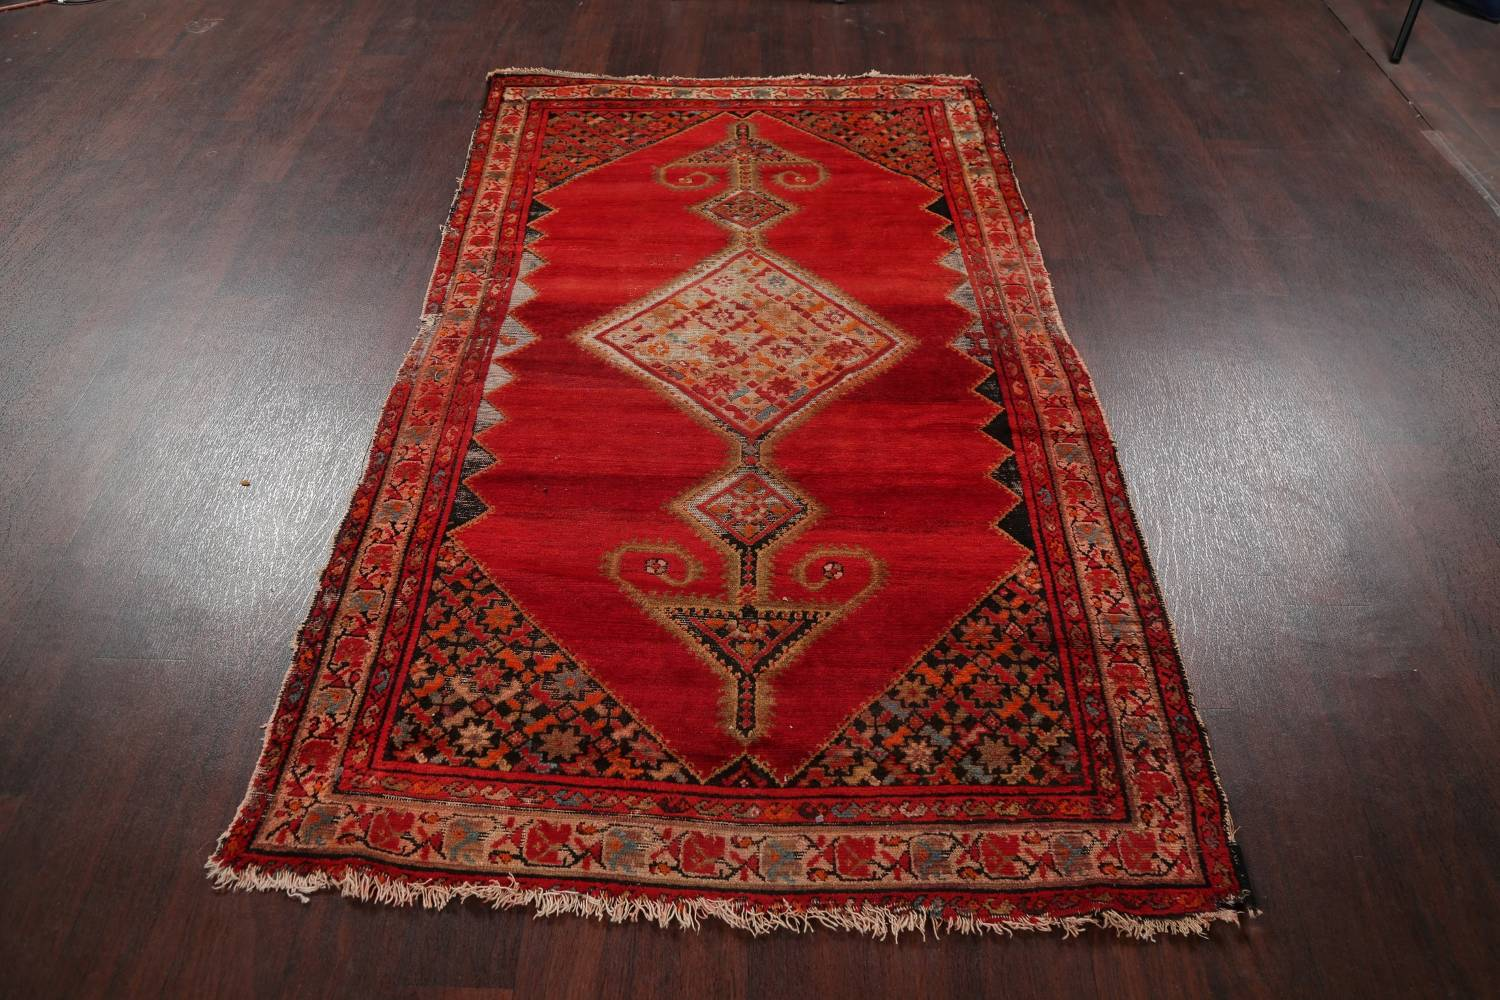 Pre-1900 Antique Bibikabad Persian Hand-Knotted 4x7 Wool Area Rug image 17